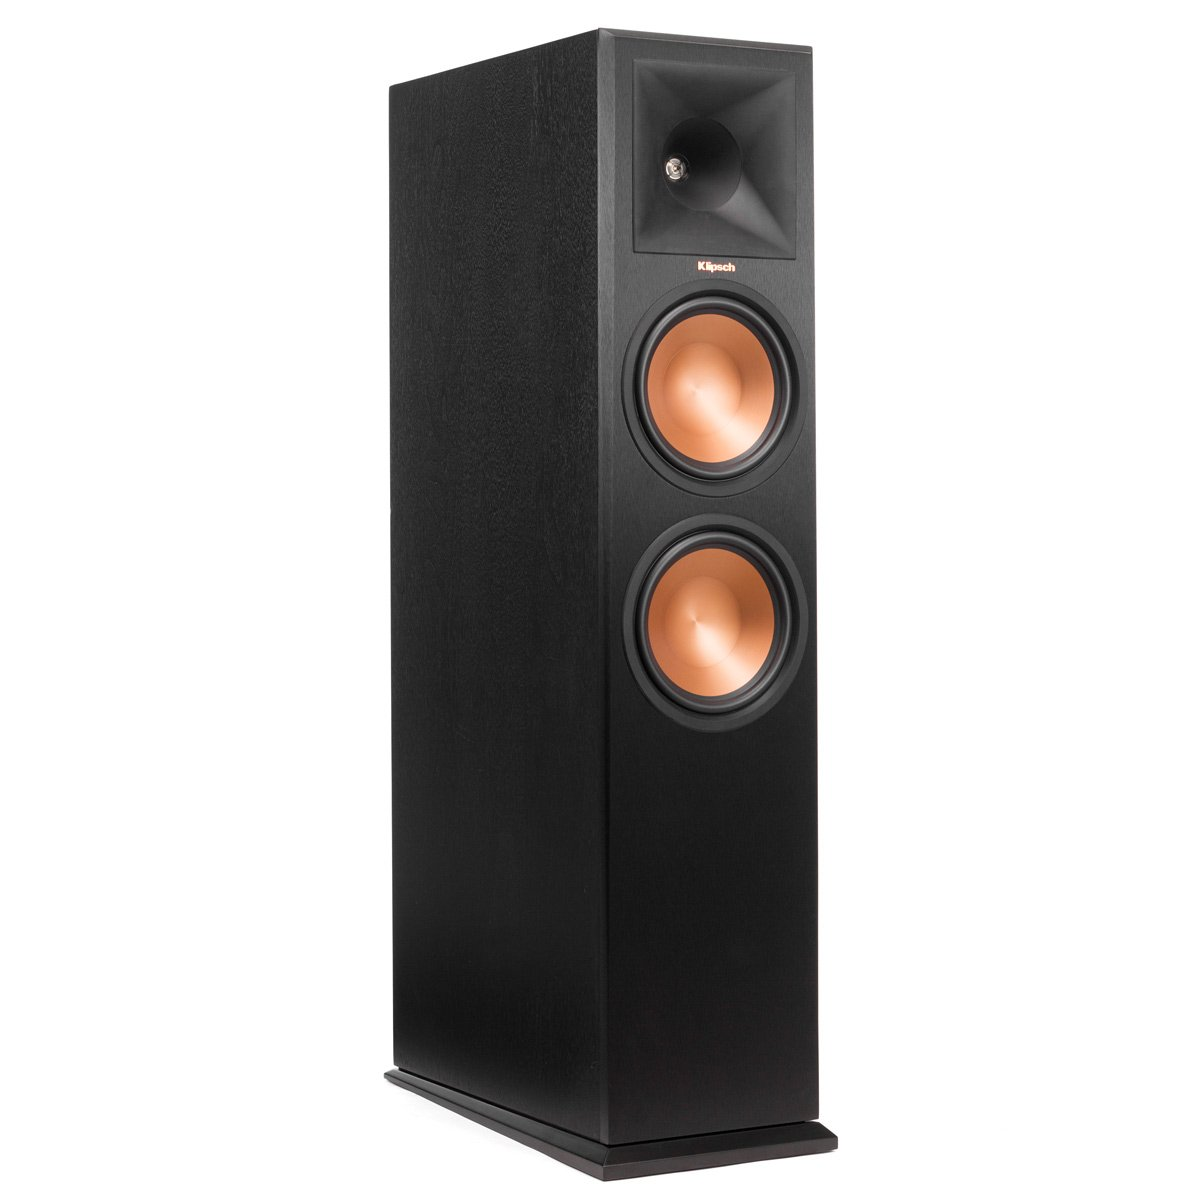 Klipsch RP-280FA Floorstanding Speaker with Built-In Dolby Atmos Height Channel - Each (Ebony Vinyl) by Klipsch